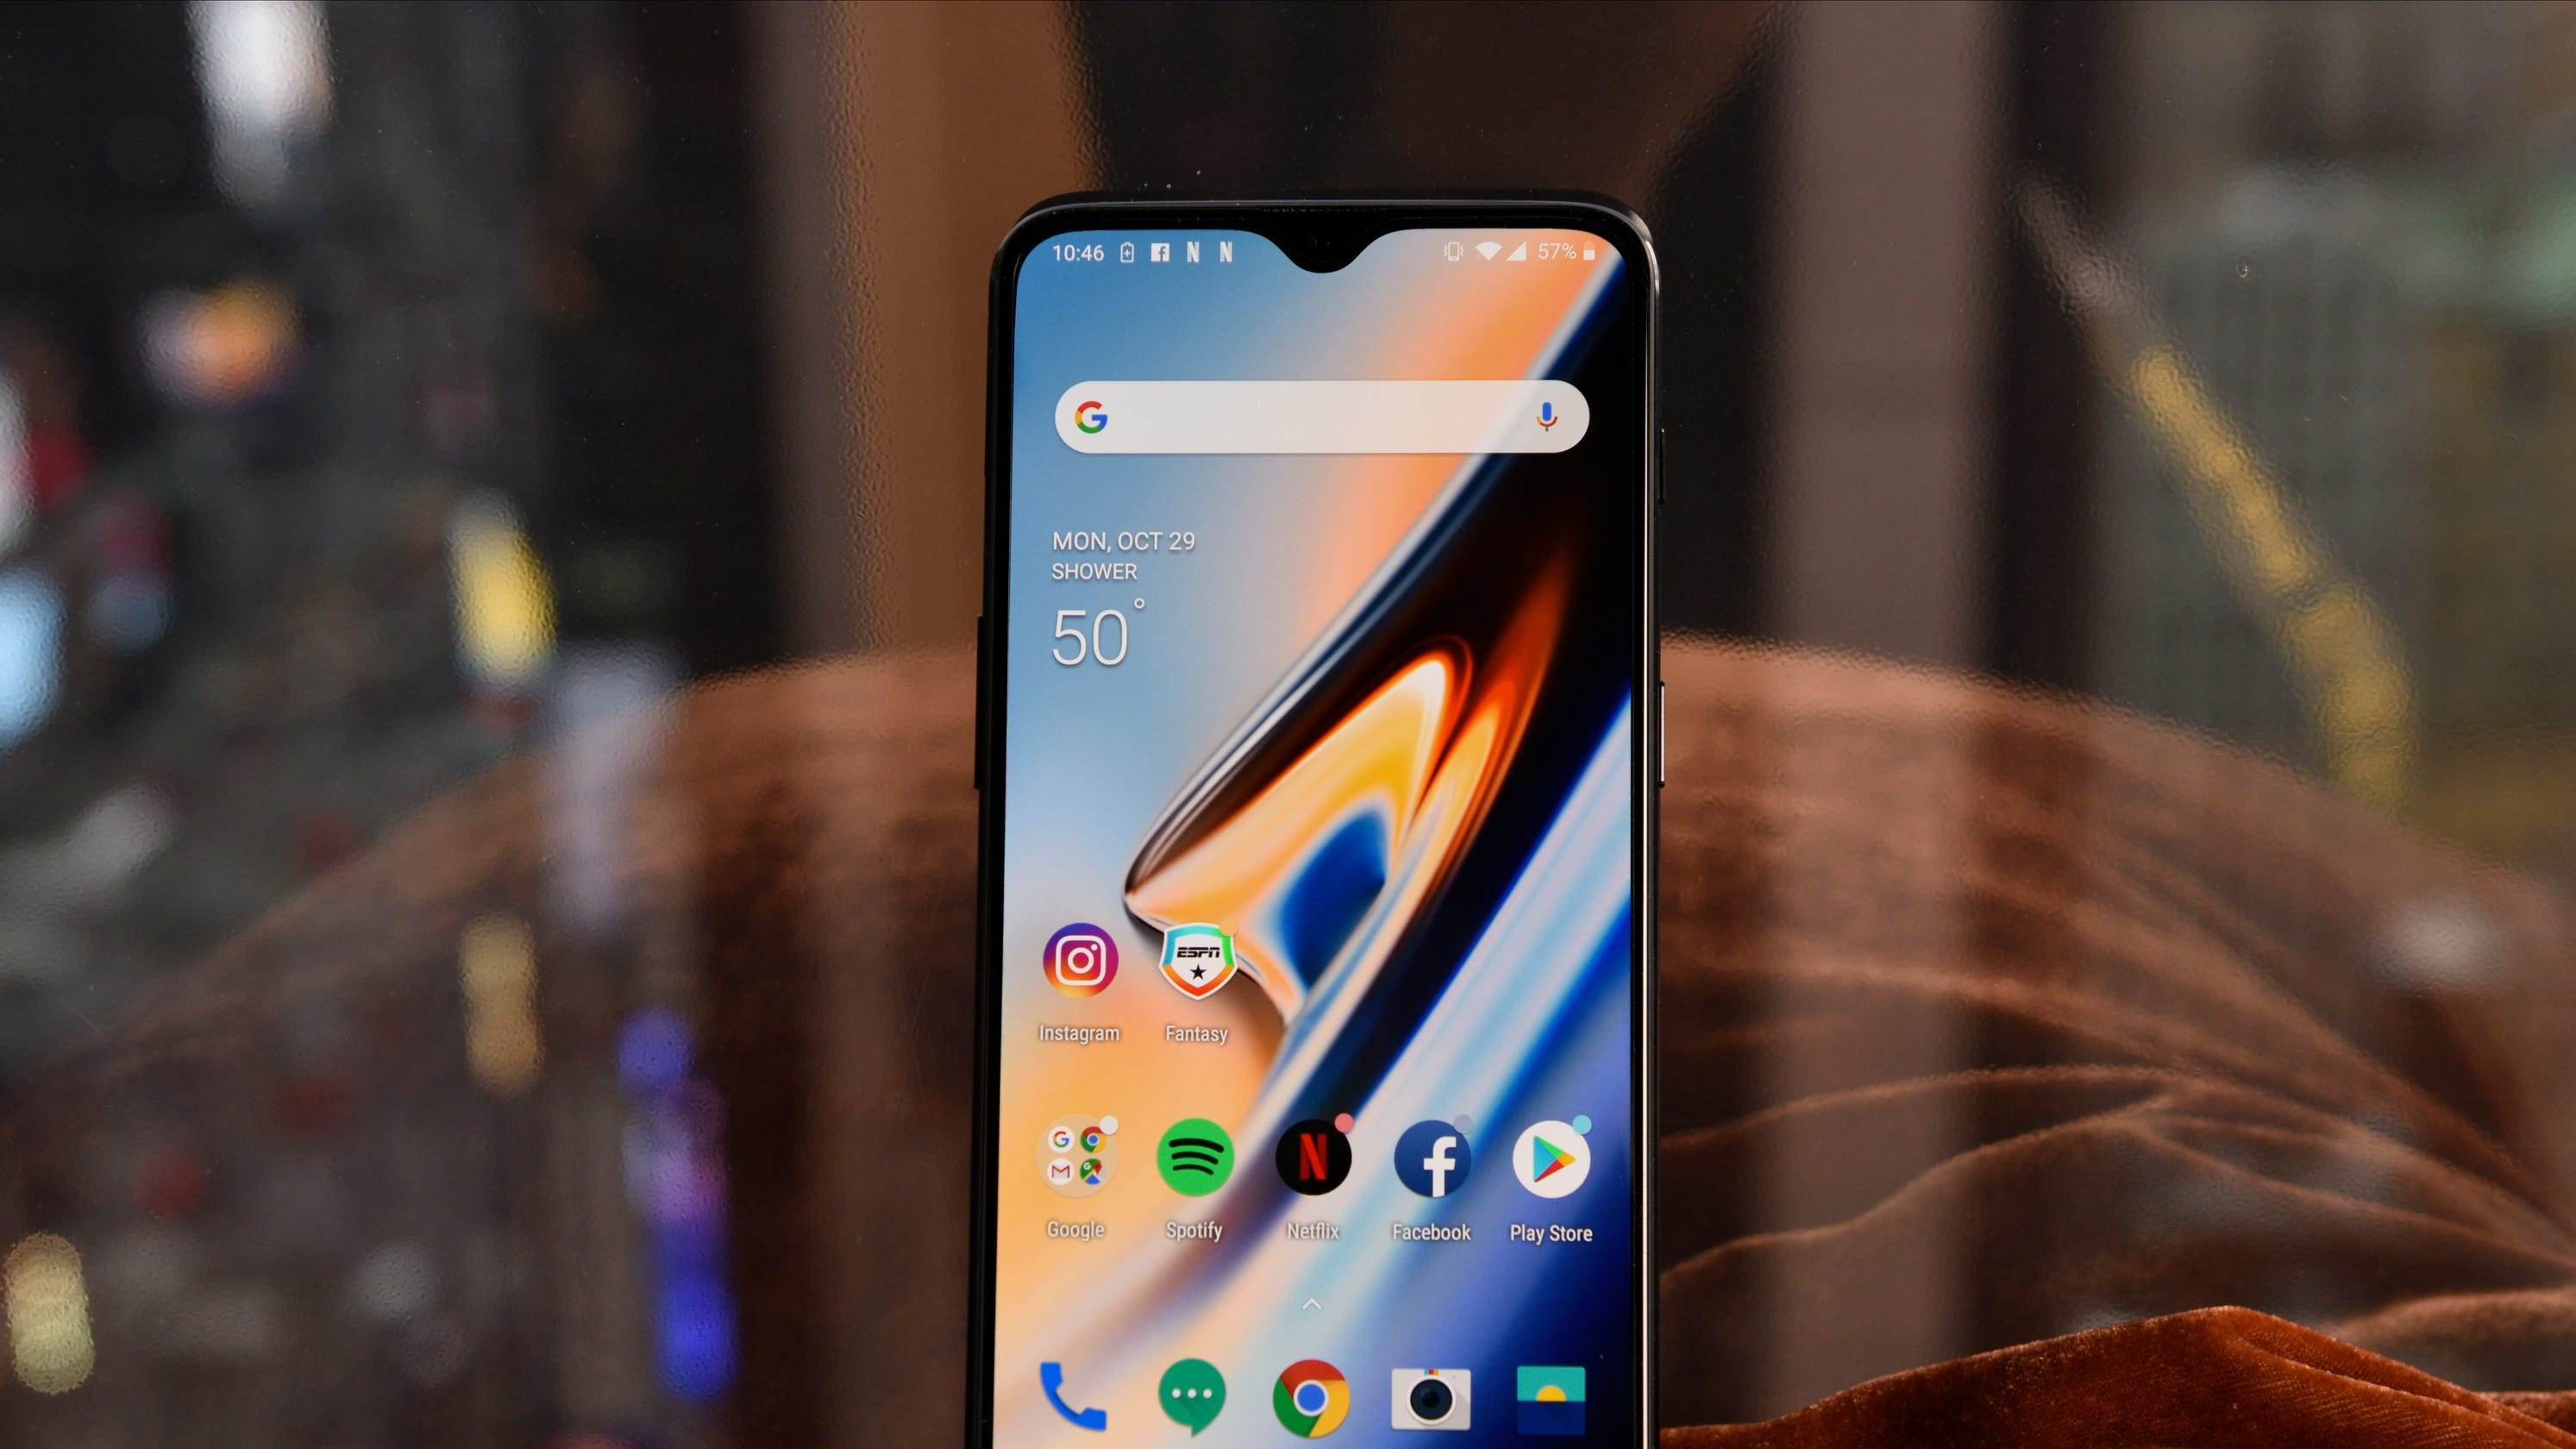 OnePlus 6T puts a fingerprint scanner in its screen to rival